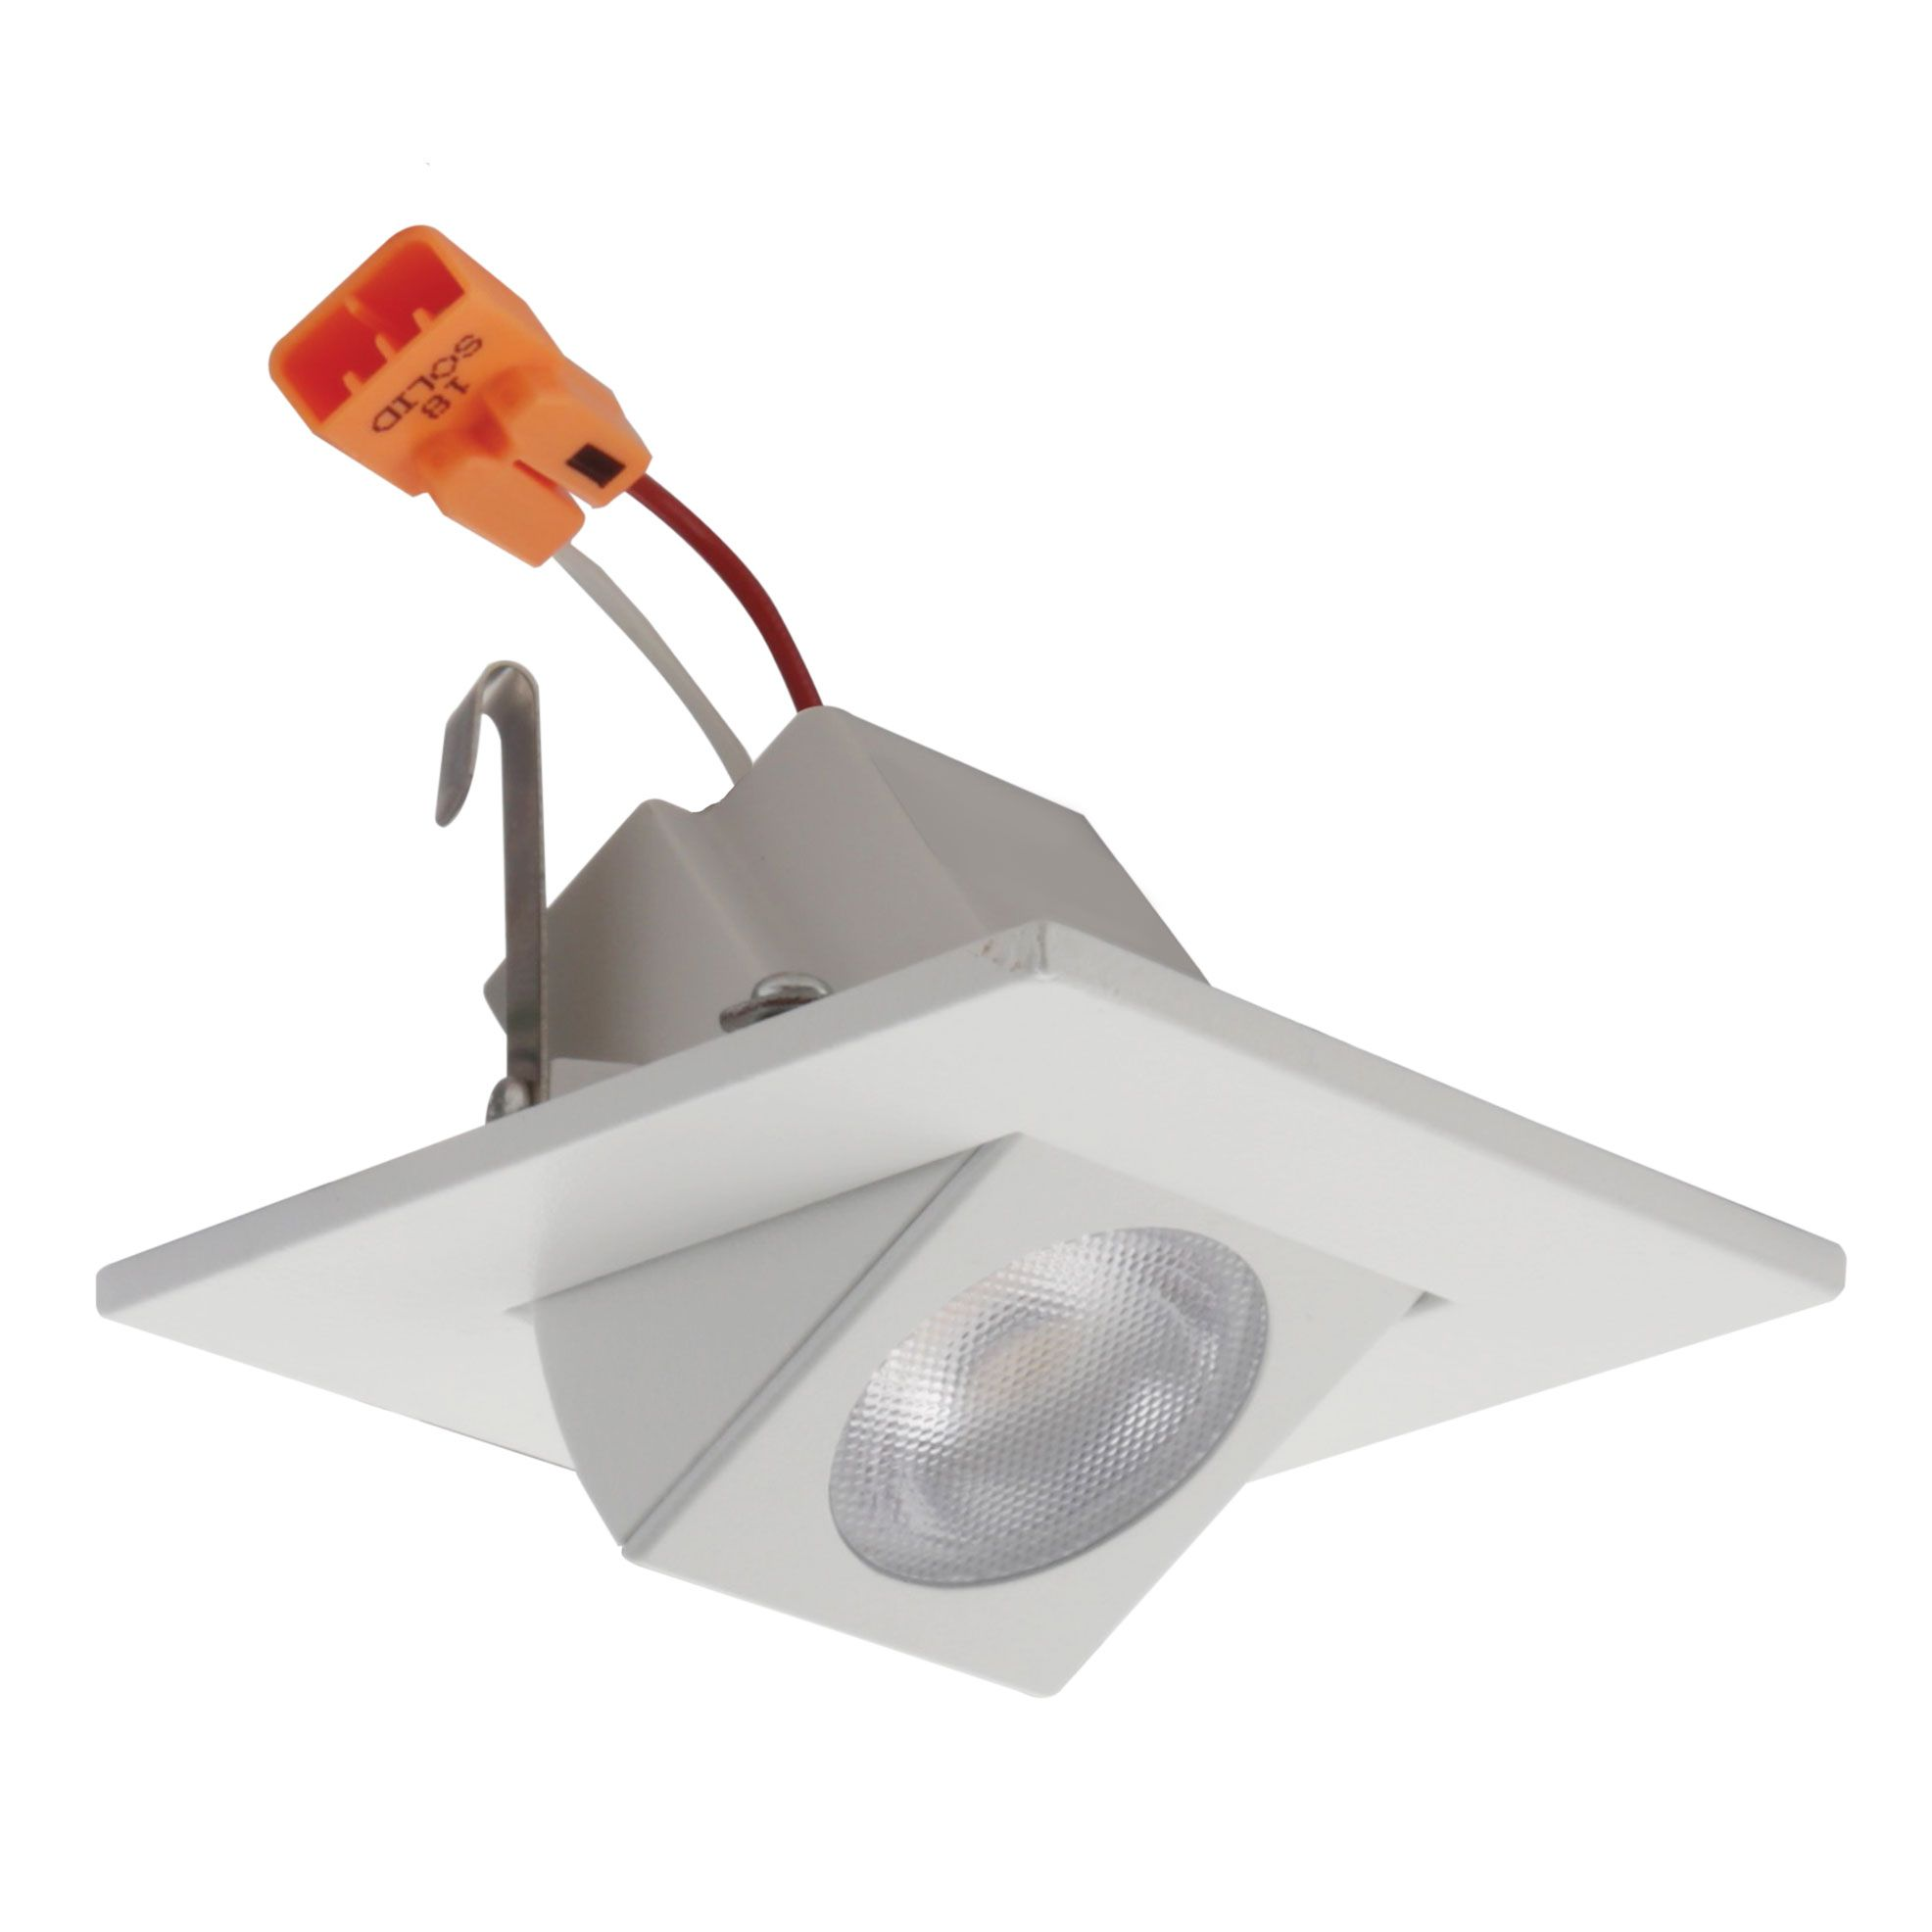 alcon lighting 14035 architectural high performance low profile 2 inch square adjustable led recessed light trim and housing 2700k warm white light